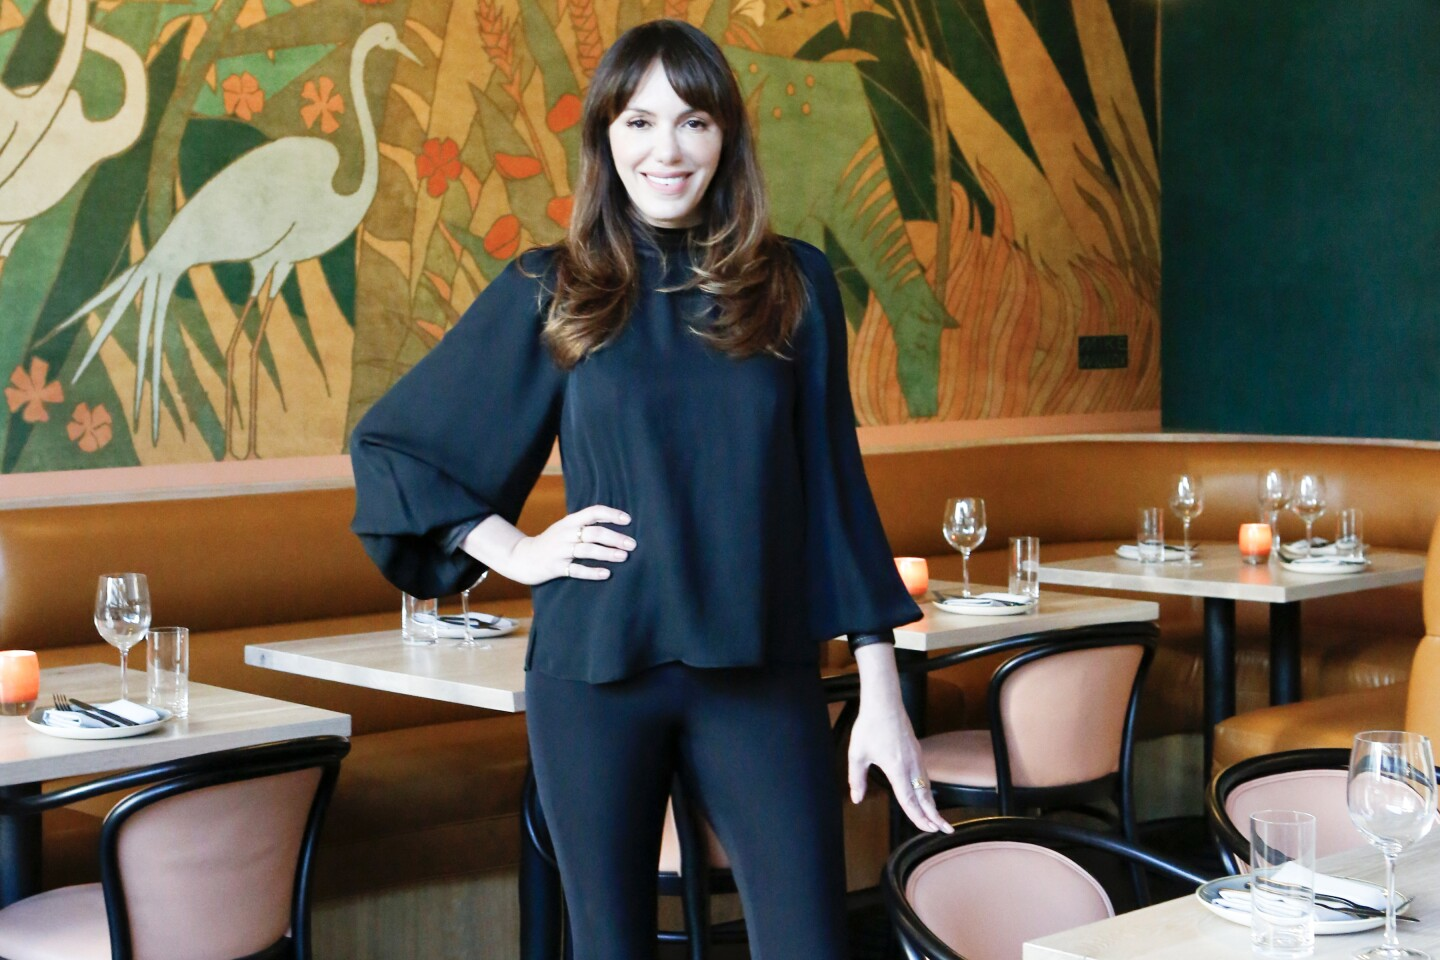 Interior designer Marissa Zajack photographed at Red Herring restaurant in downtown Los Angeles.